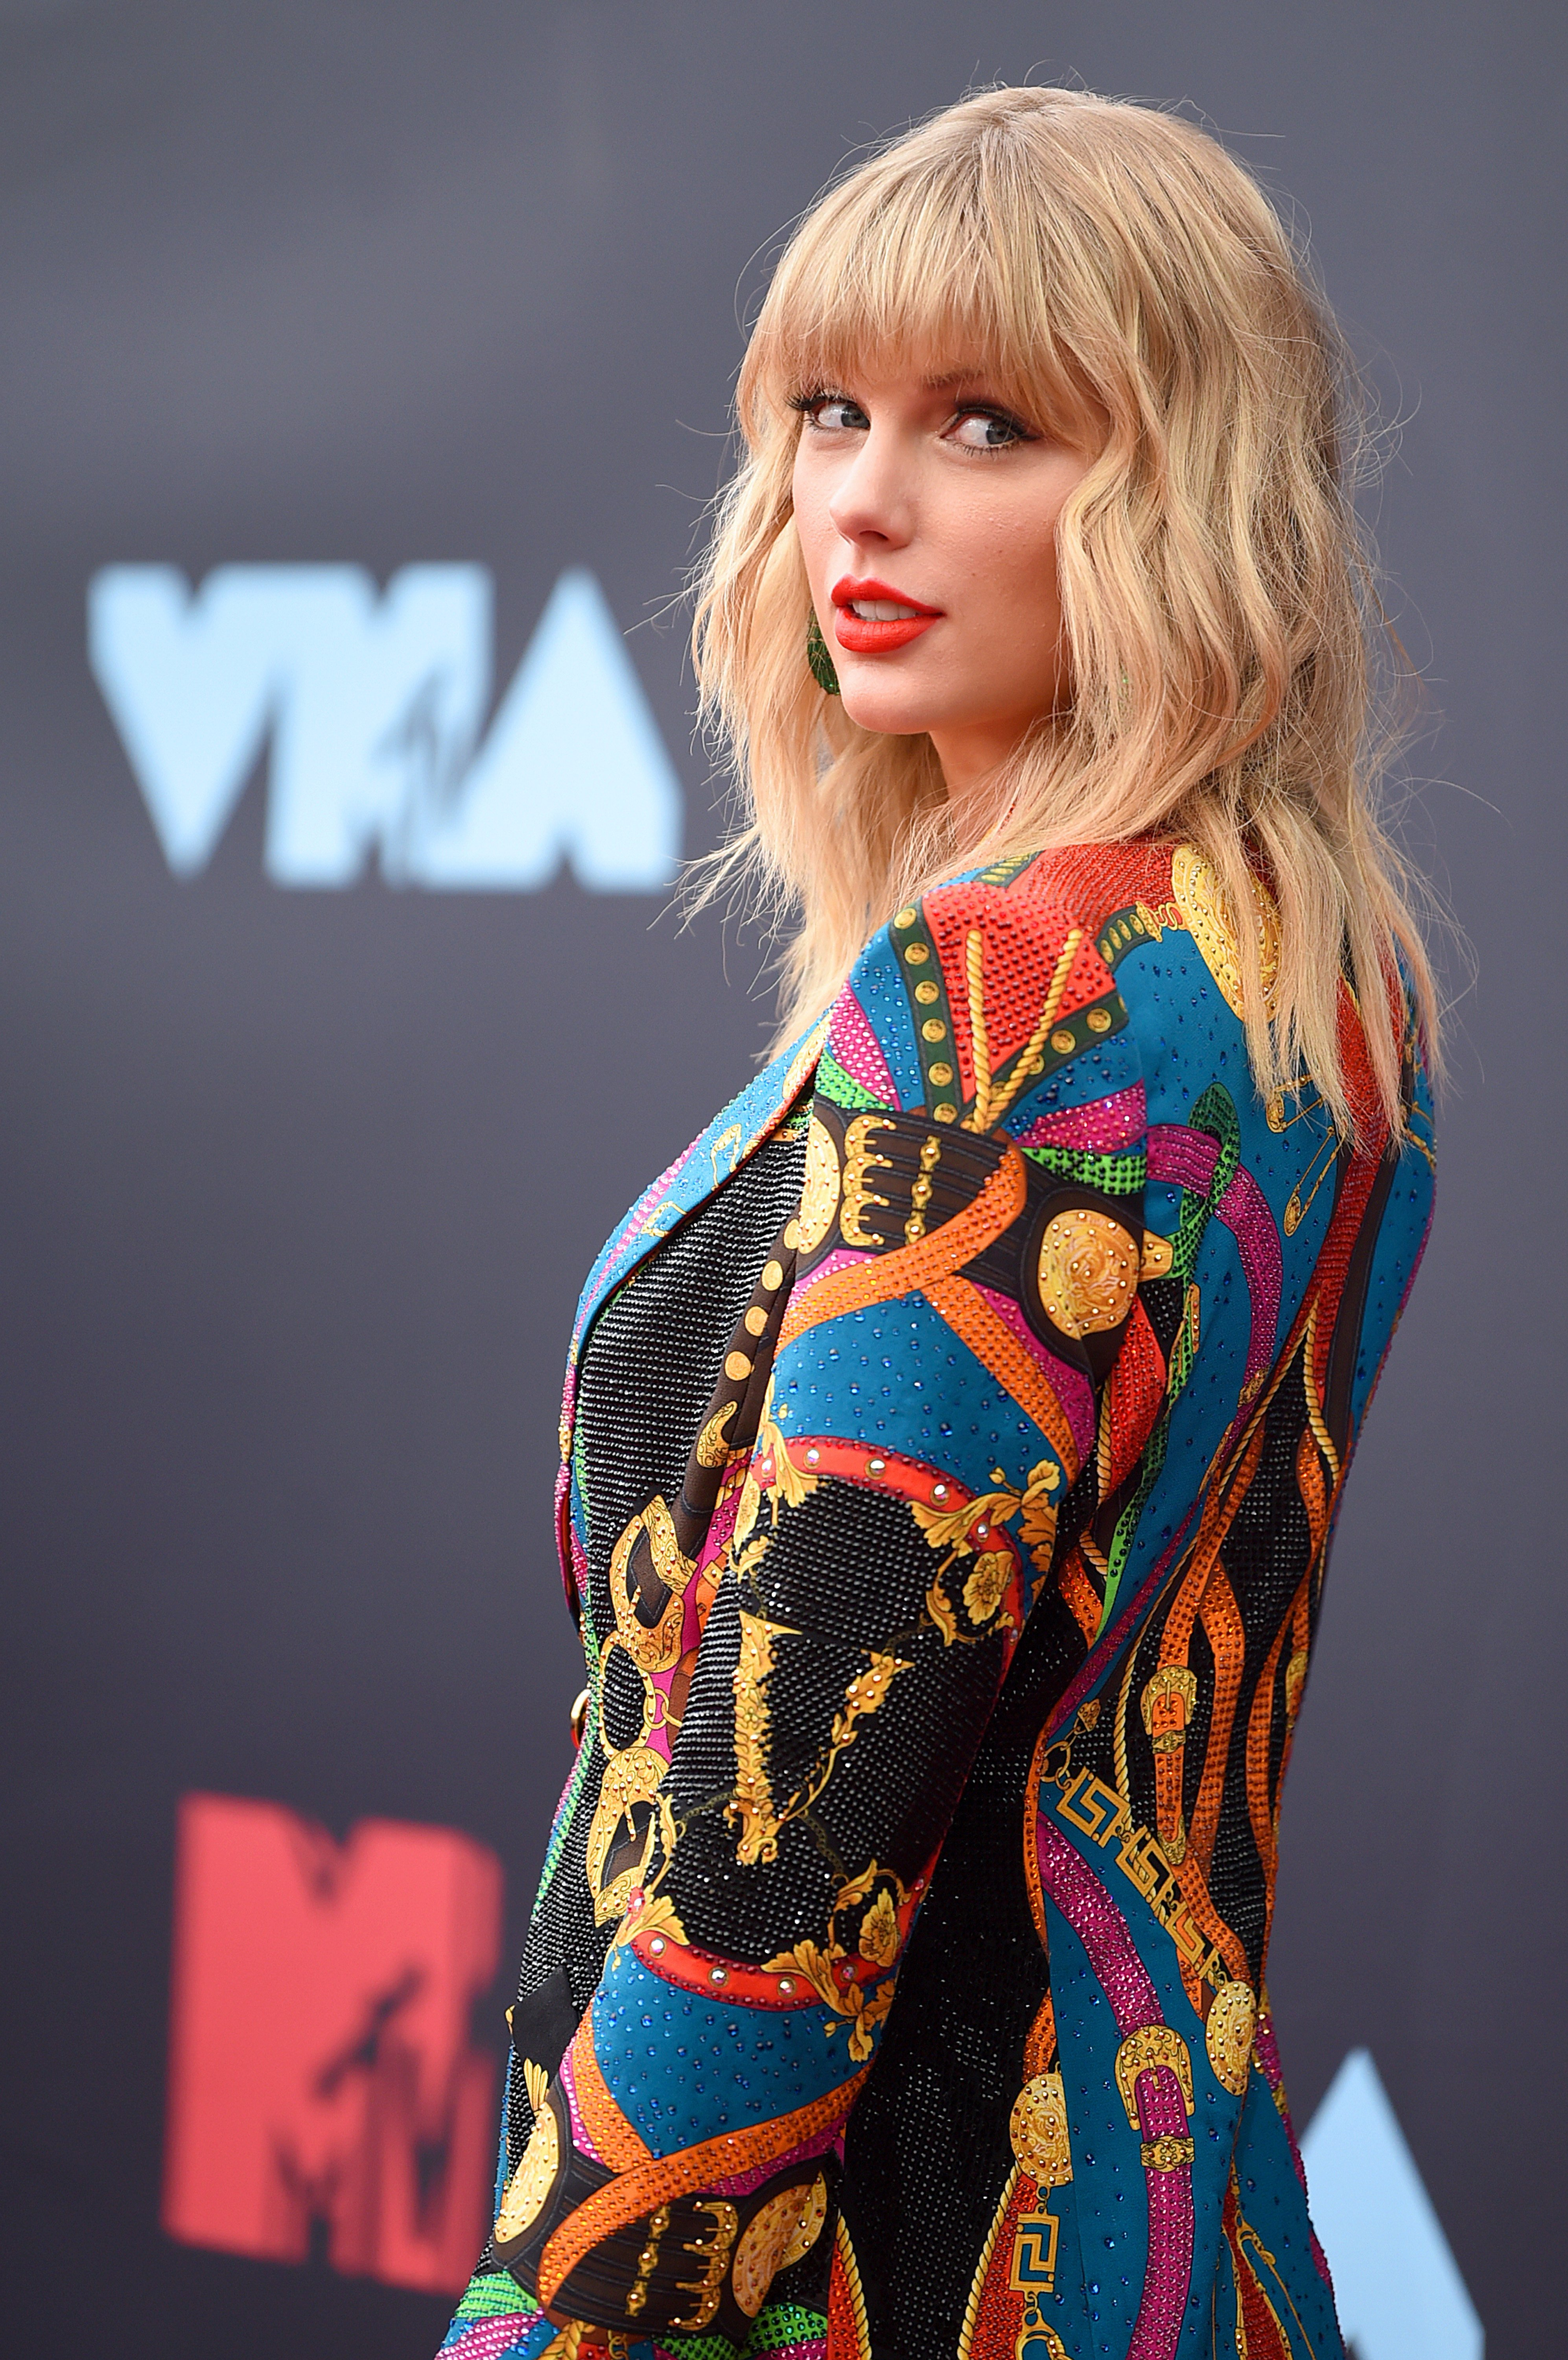 Taylor Swift attends the MTV Video Music Awards in Newark, New Jersey on August 26, 2019 | Photo: Getty Images